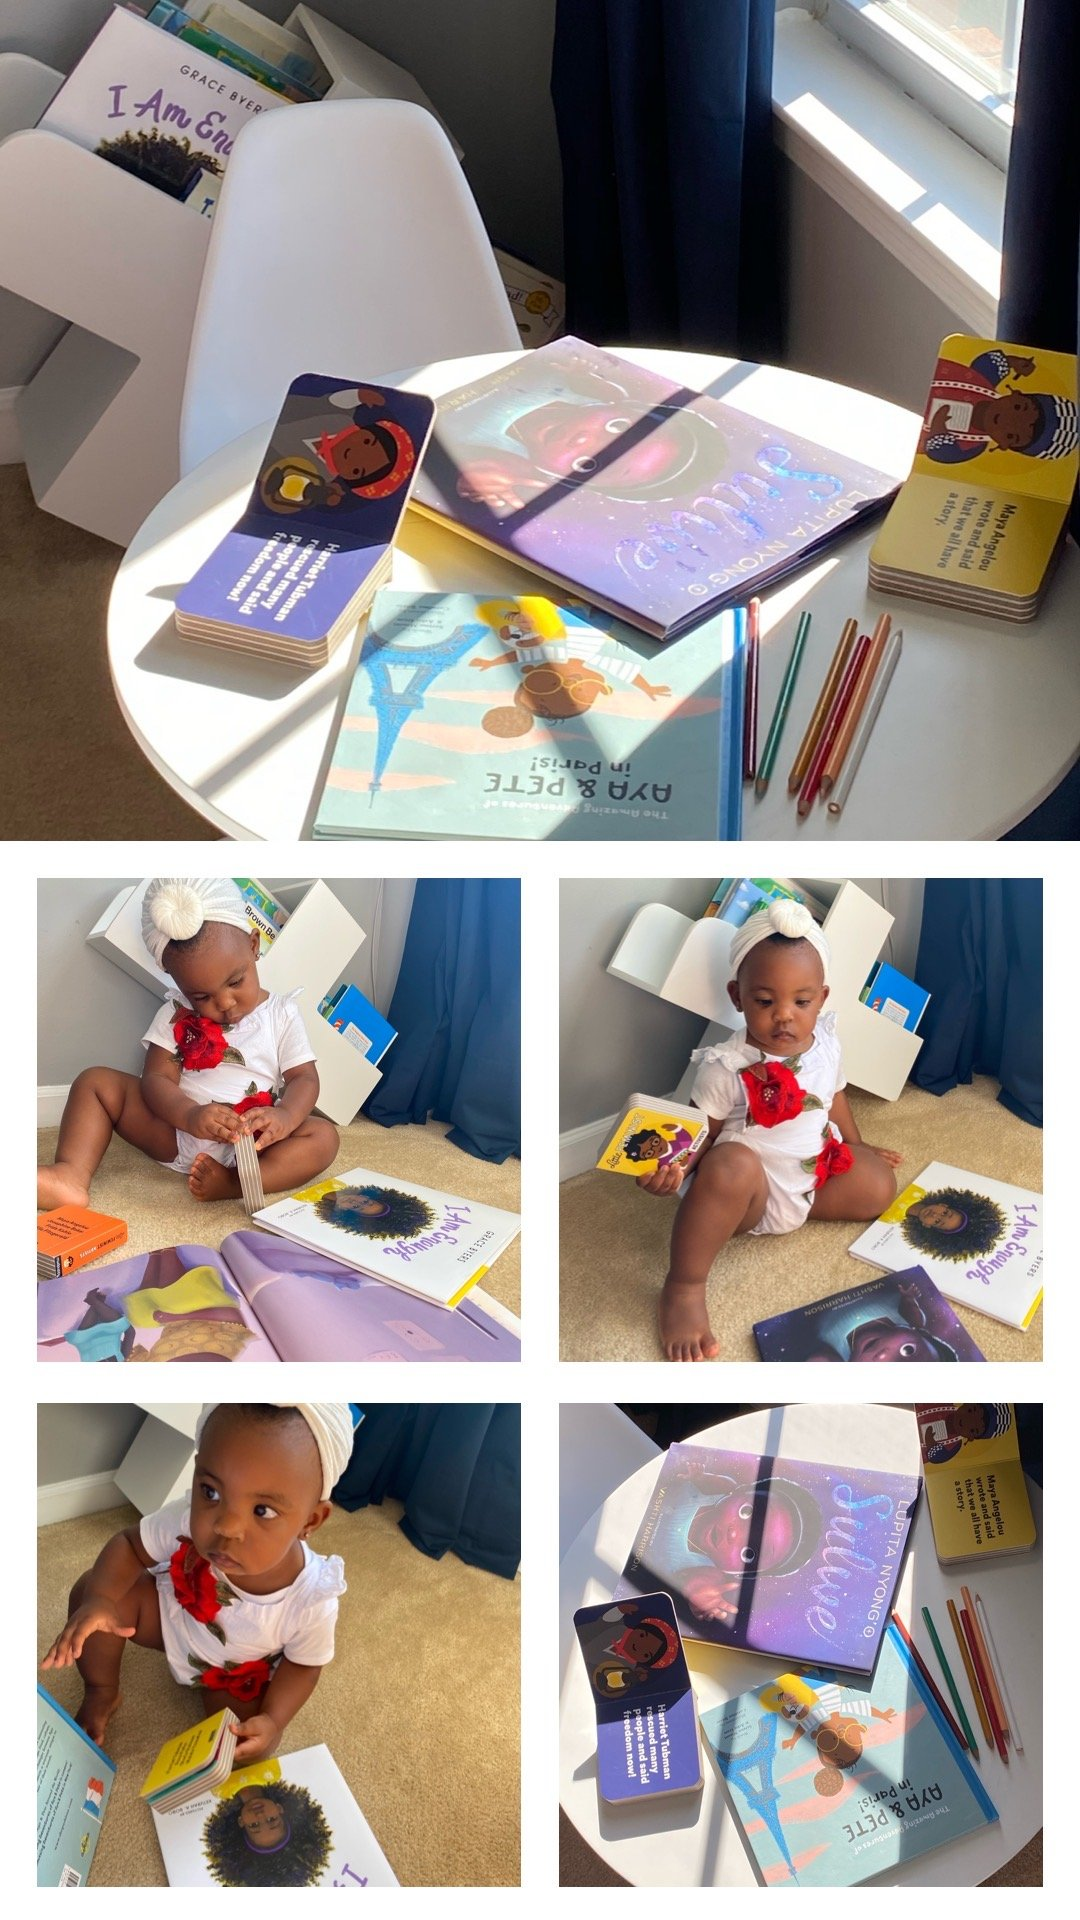 stella-adewunmi-of-jadore-fashion-blog-Childrens-Books-That-Celebrate-Black-Culture-And-Diversity